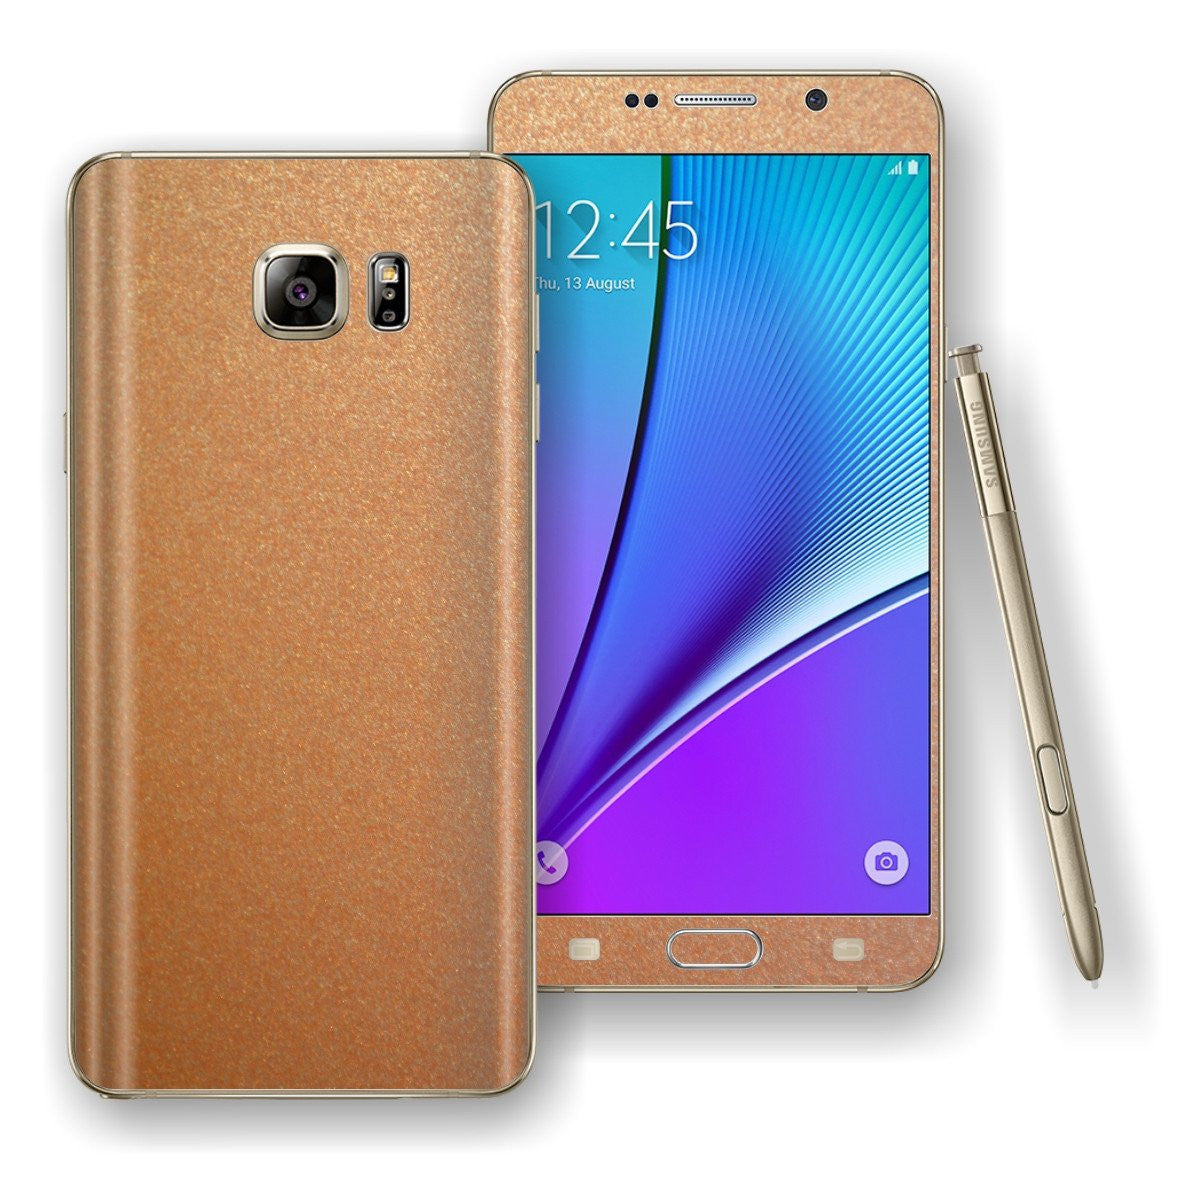 Samsung Galaxy NOTE 5 3M Copper Matt Metallic Skin Wrap Decal Cover Protector by EasySkinz